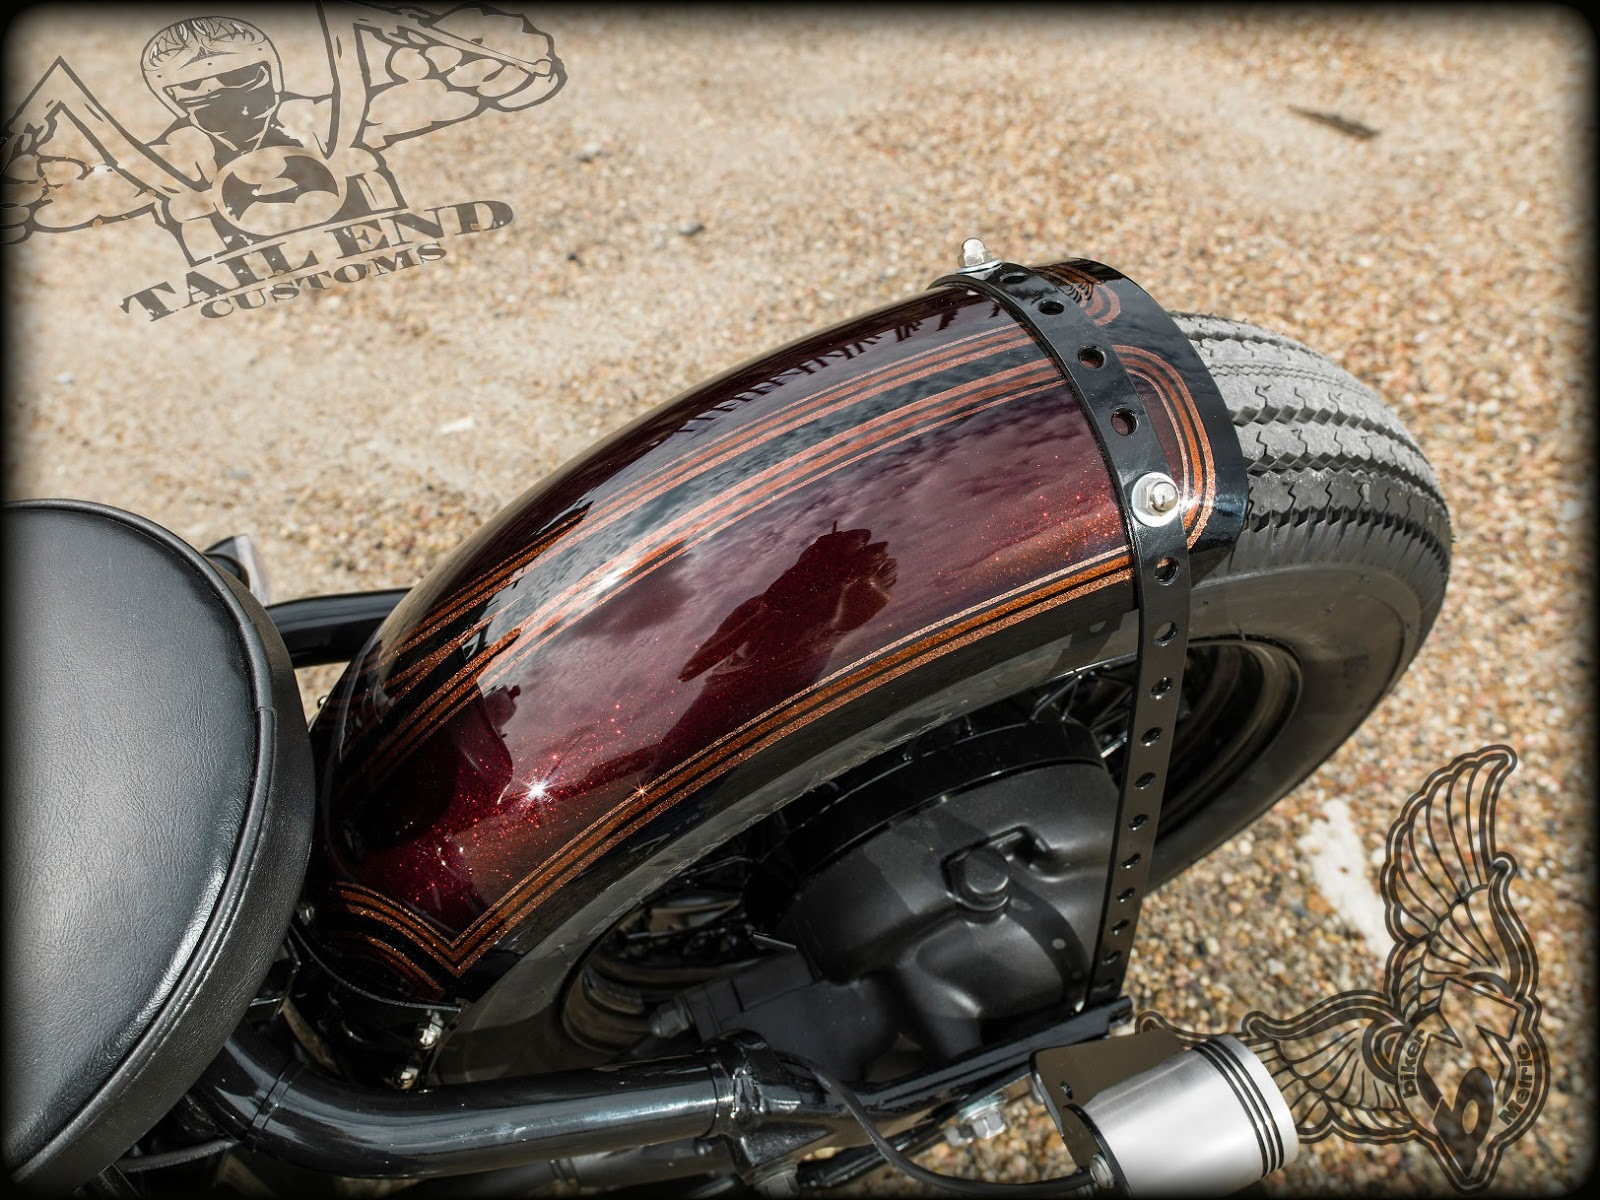 Yamaha V Star 650 By Tail End Customs Bikermetric